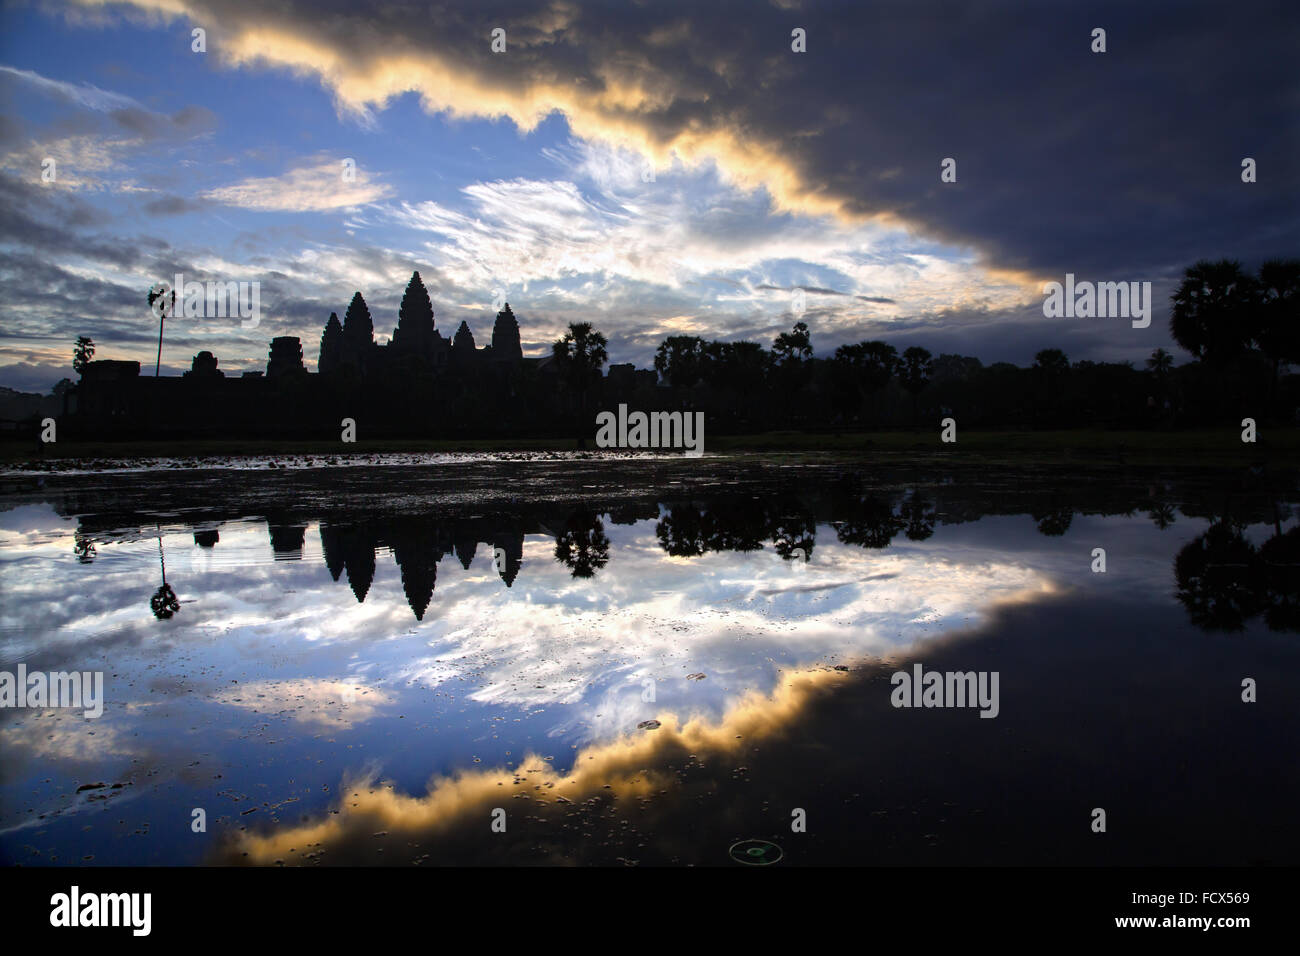 Incroyable lever de soleil sur Angkor Vat, Cambodge Photo Stock